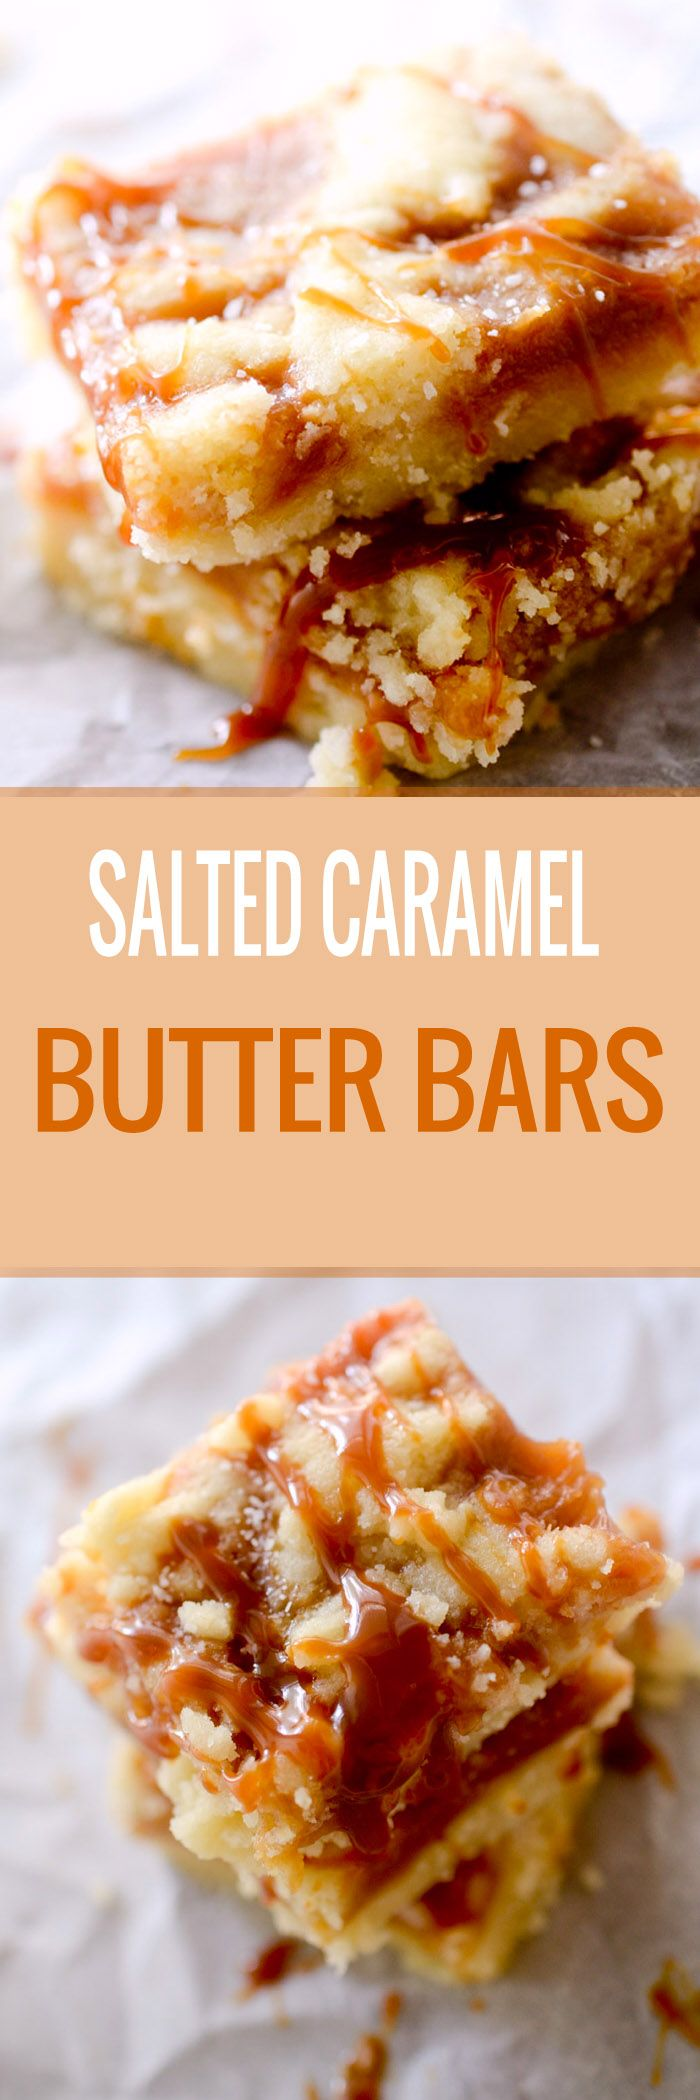 Salted Caramel Butter Bars - Over the top salted caramel dessert.